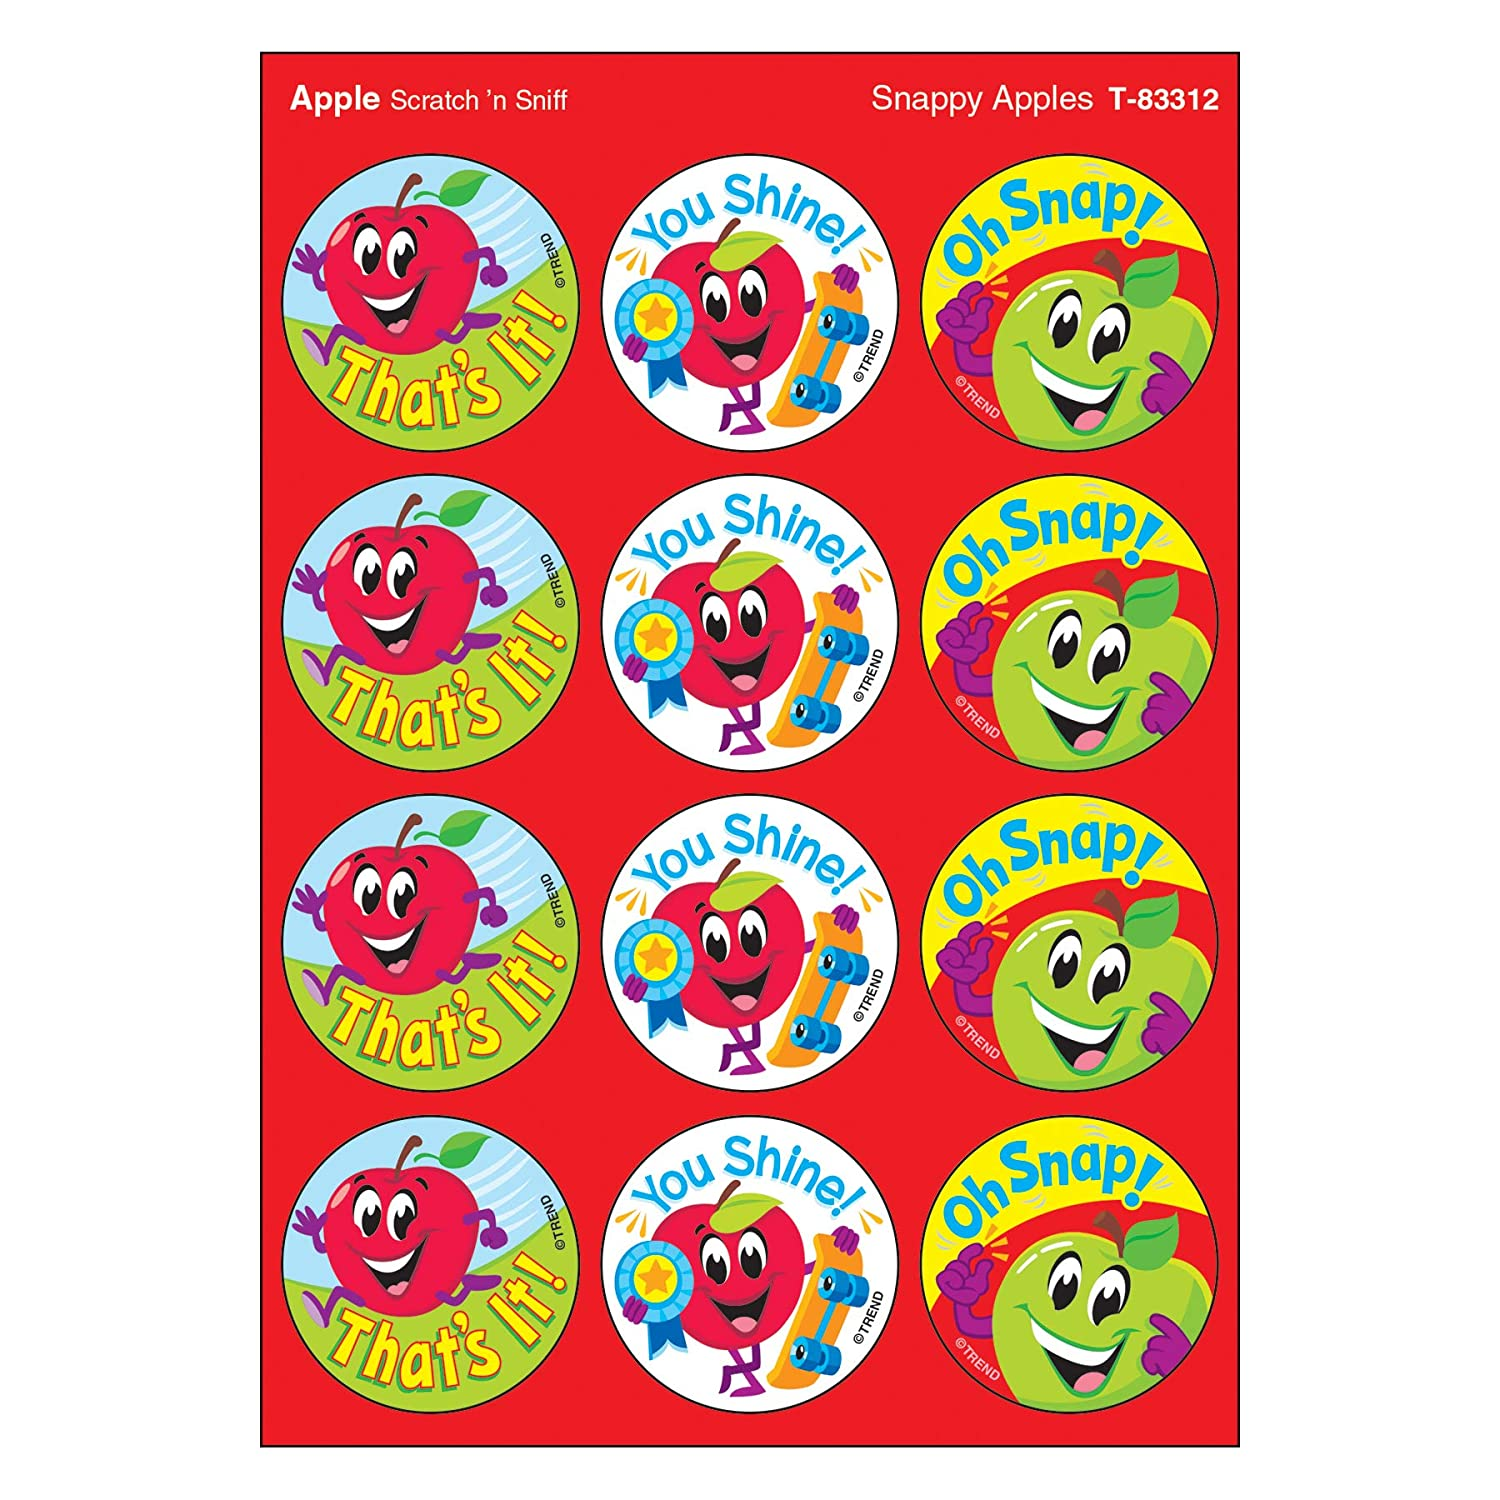 Snappy Apples/Apple Stinky Stickers, 48 Count